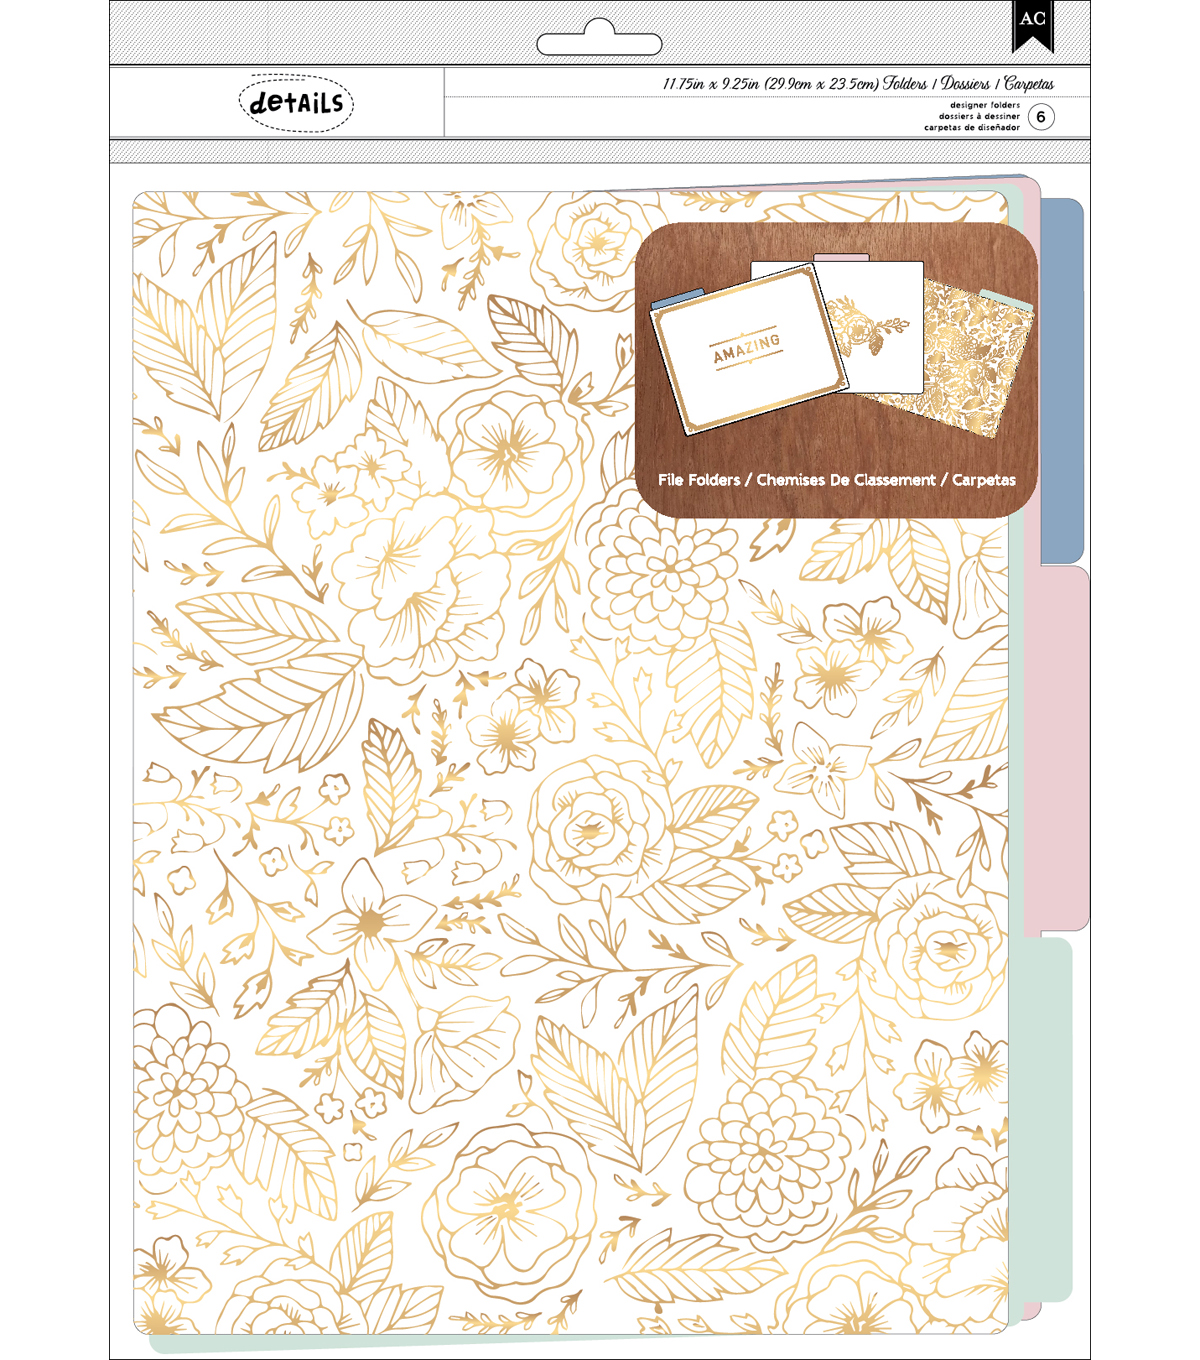 American Crafts™ Details Pack of 6 File Folders-Parisian Loft